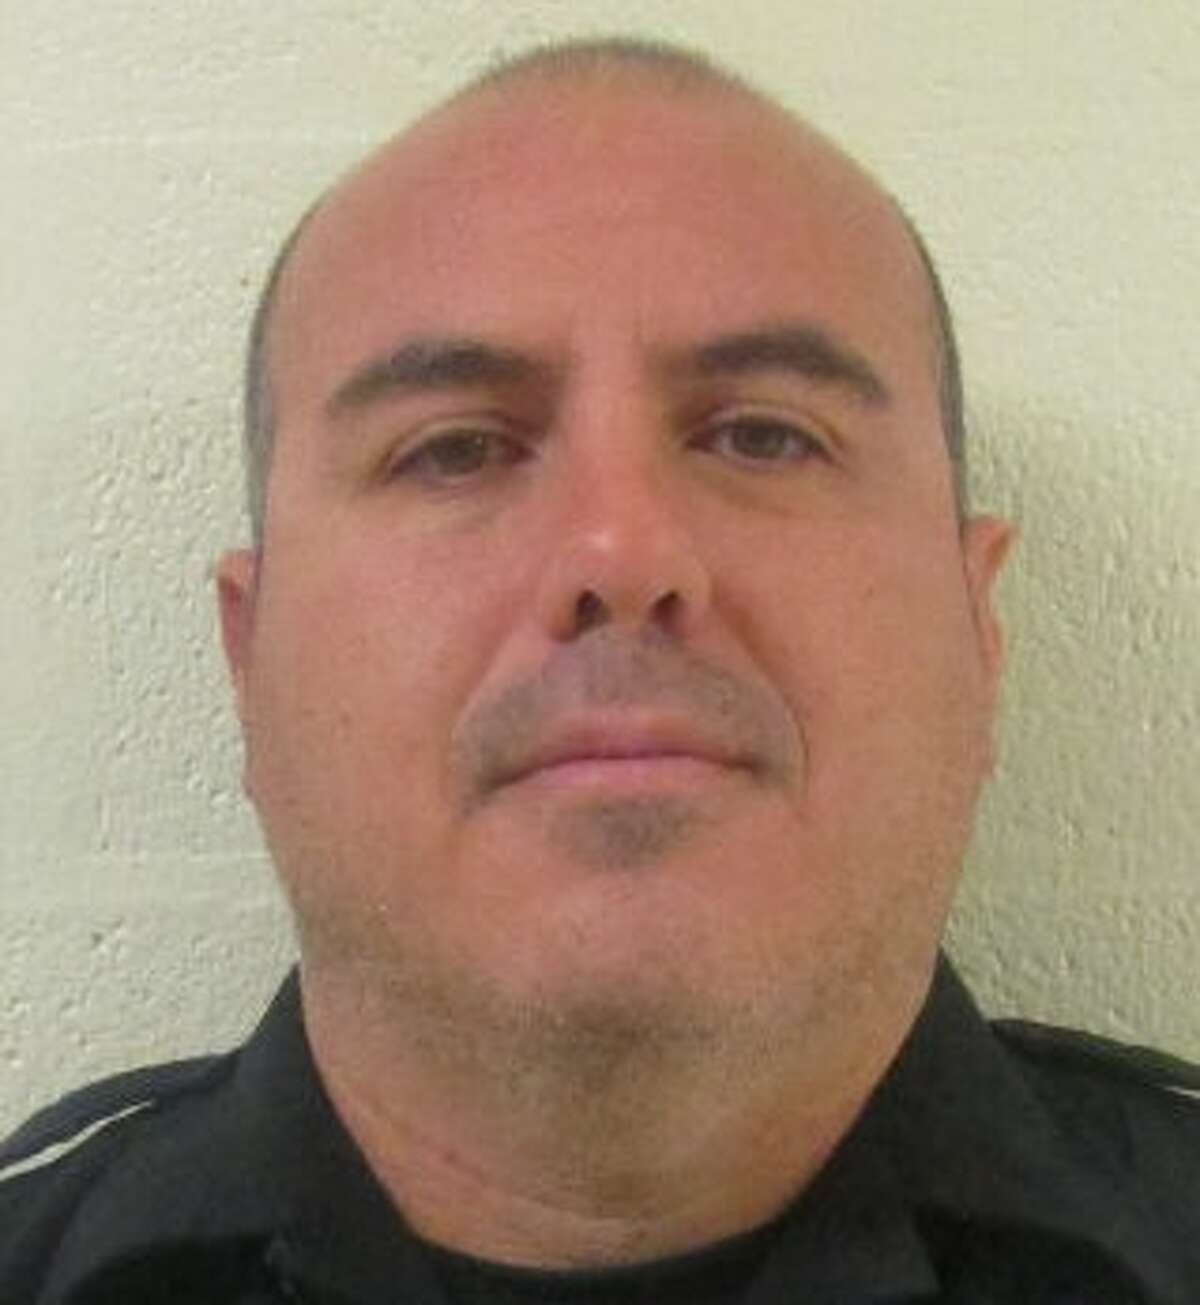 Michael Fernandez, a deputy with the Bexar County Sheriff's Office, was convicted for tampering with evidence.